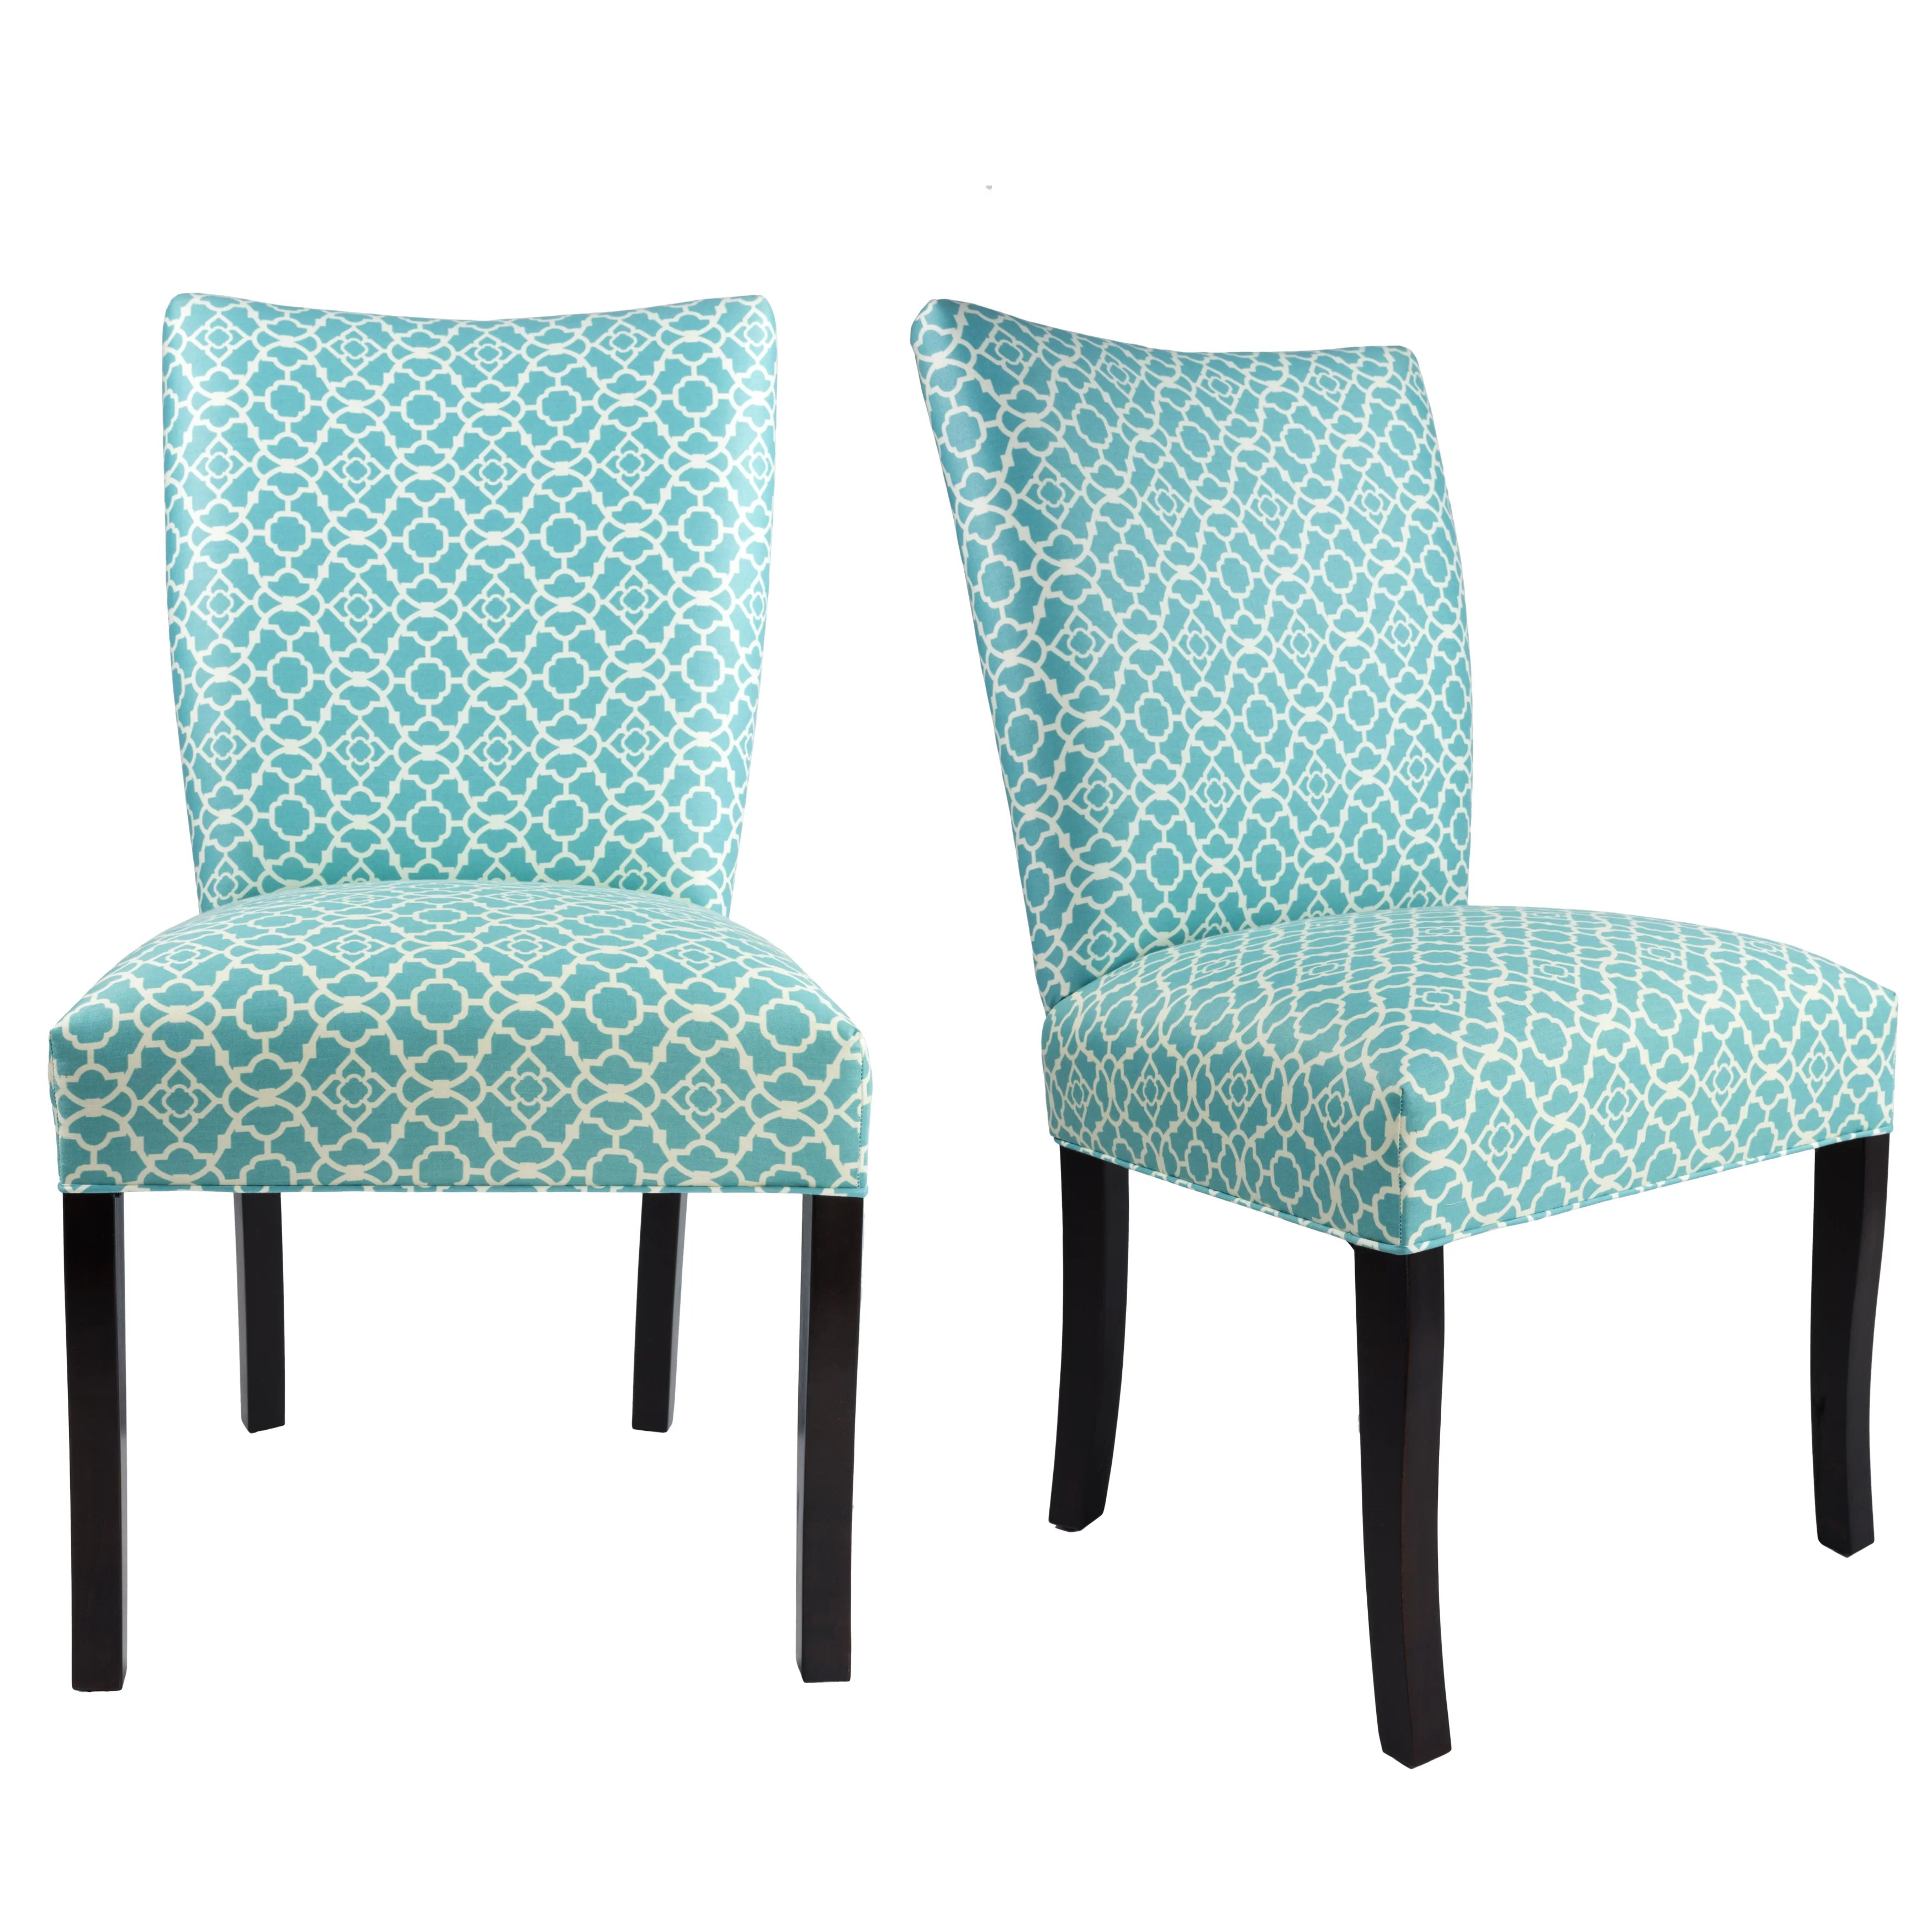 Aqua Dining Chairs Knowlson Upholstered Dining Chair